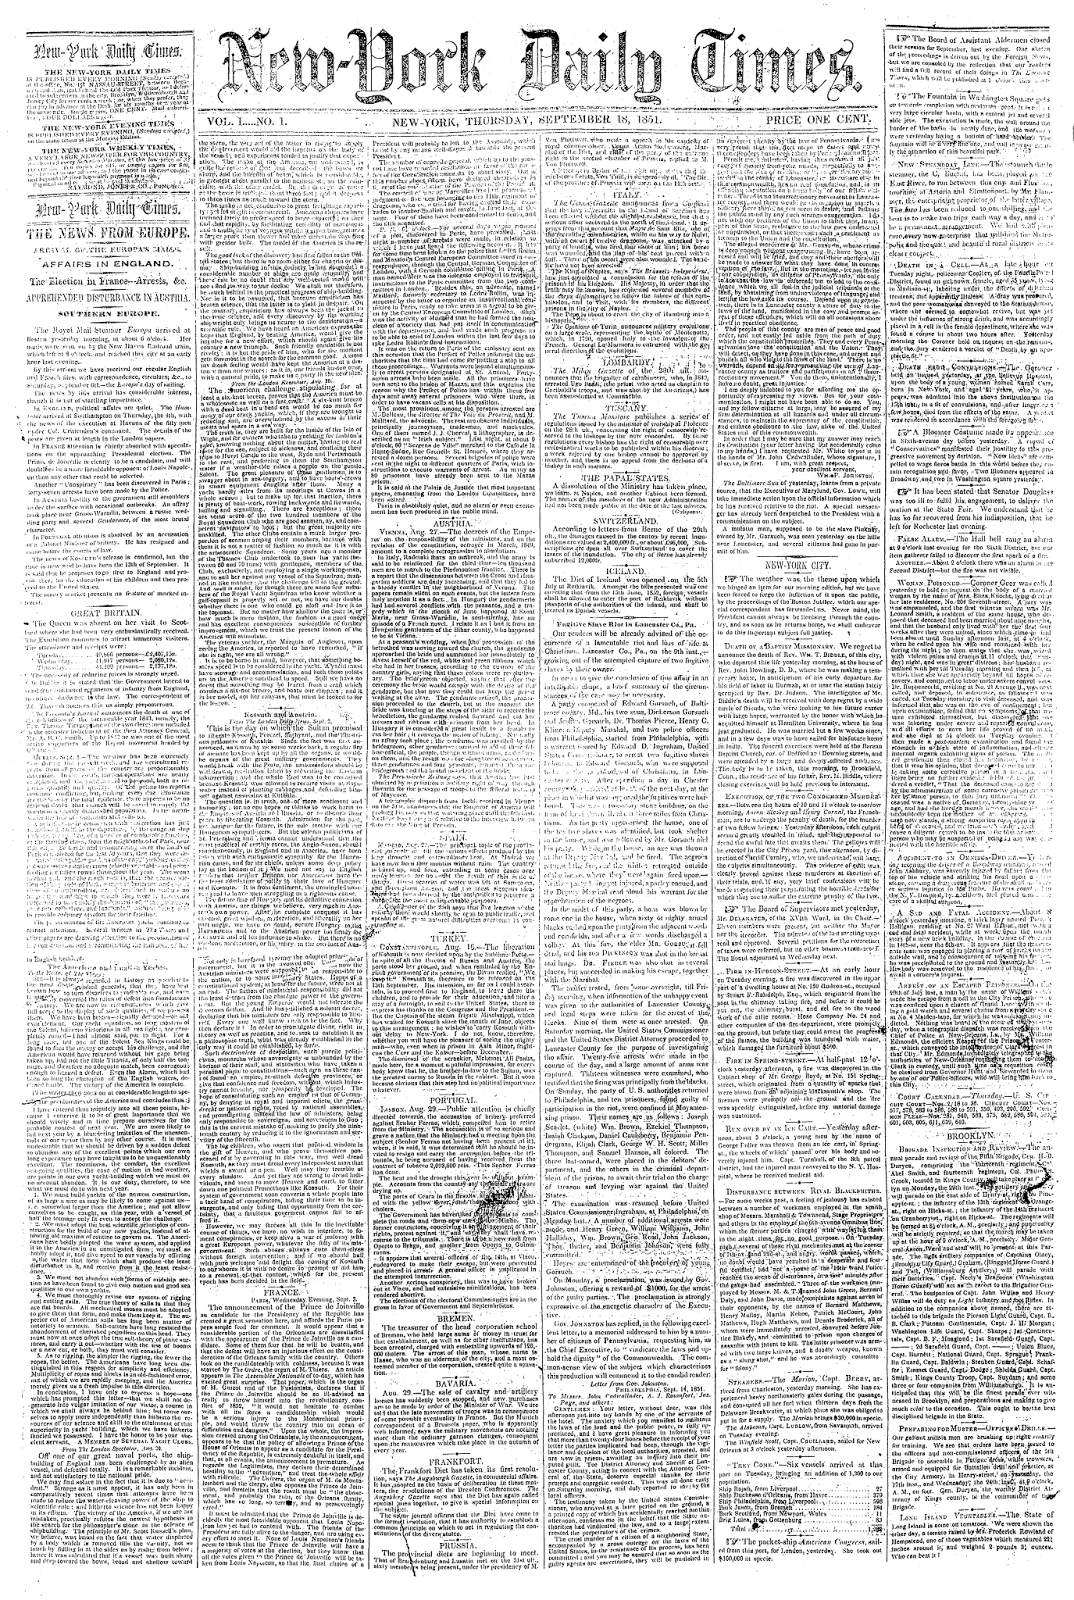 The New York Times, first issue